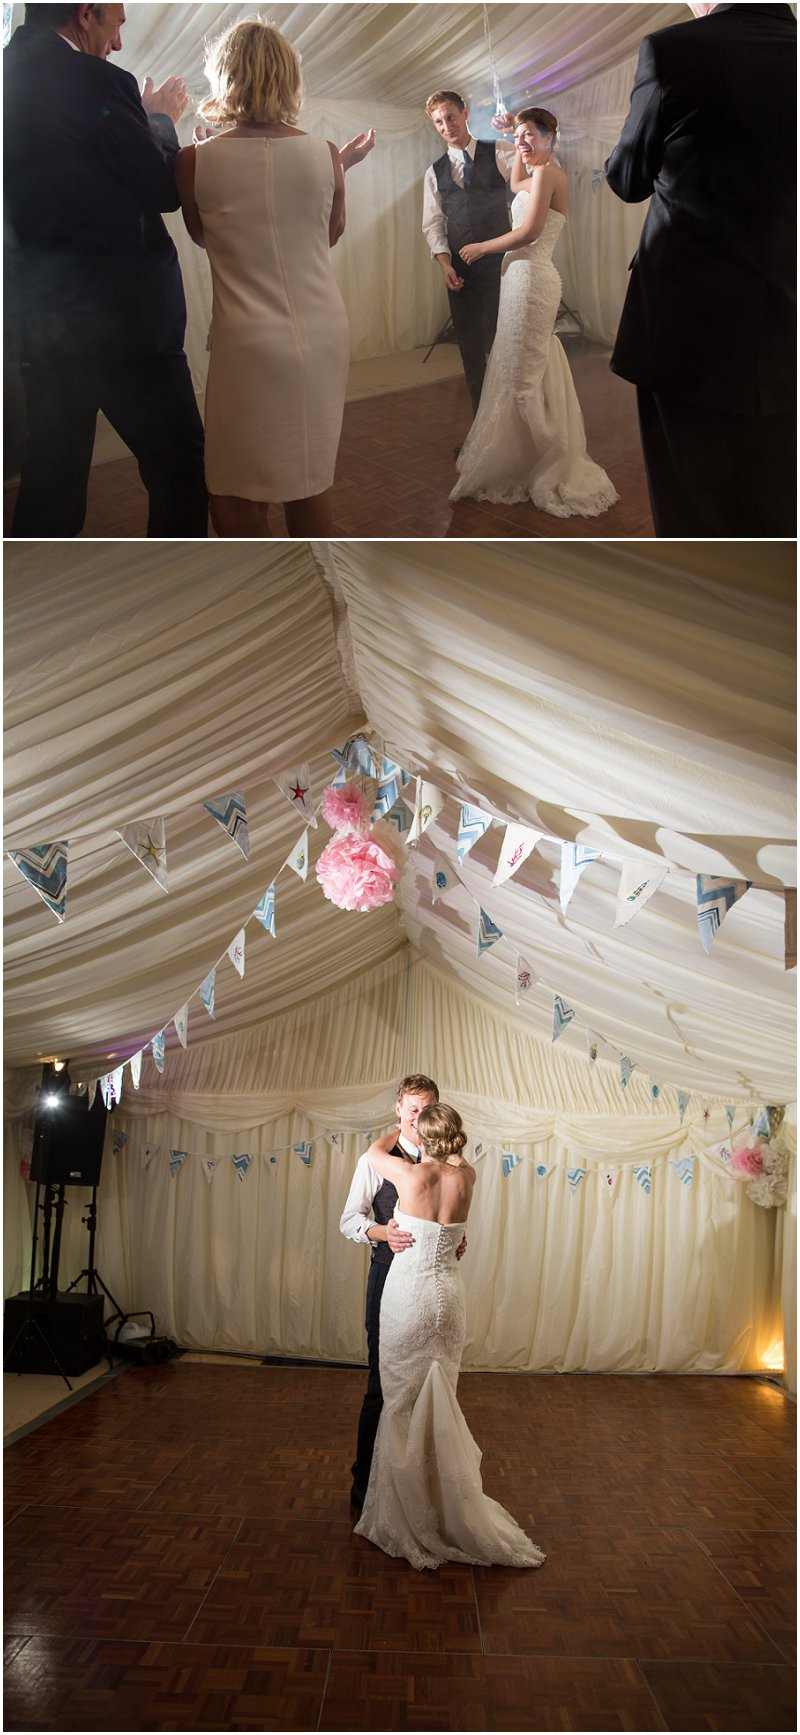 First dance at Anglesey Marquee wedding in Wales